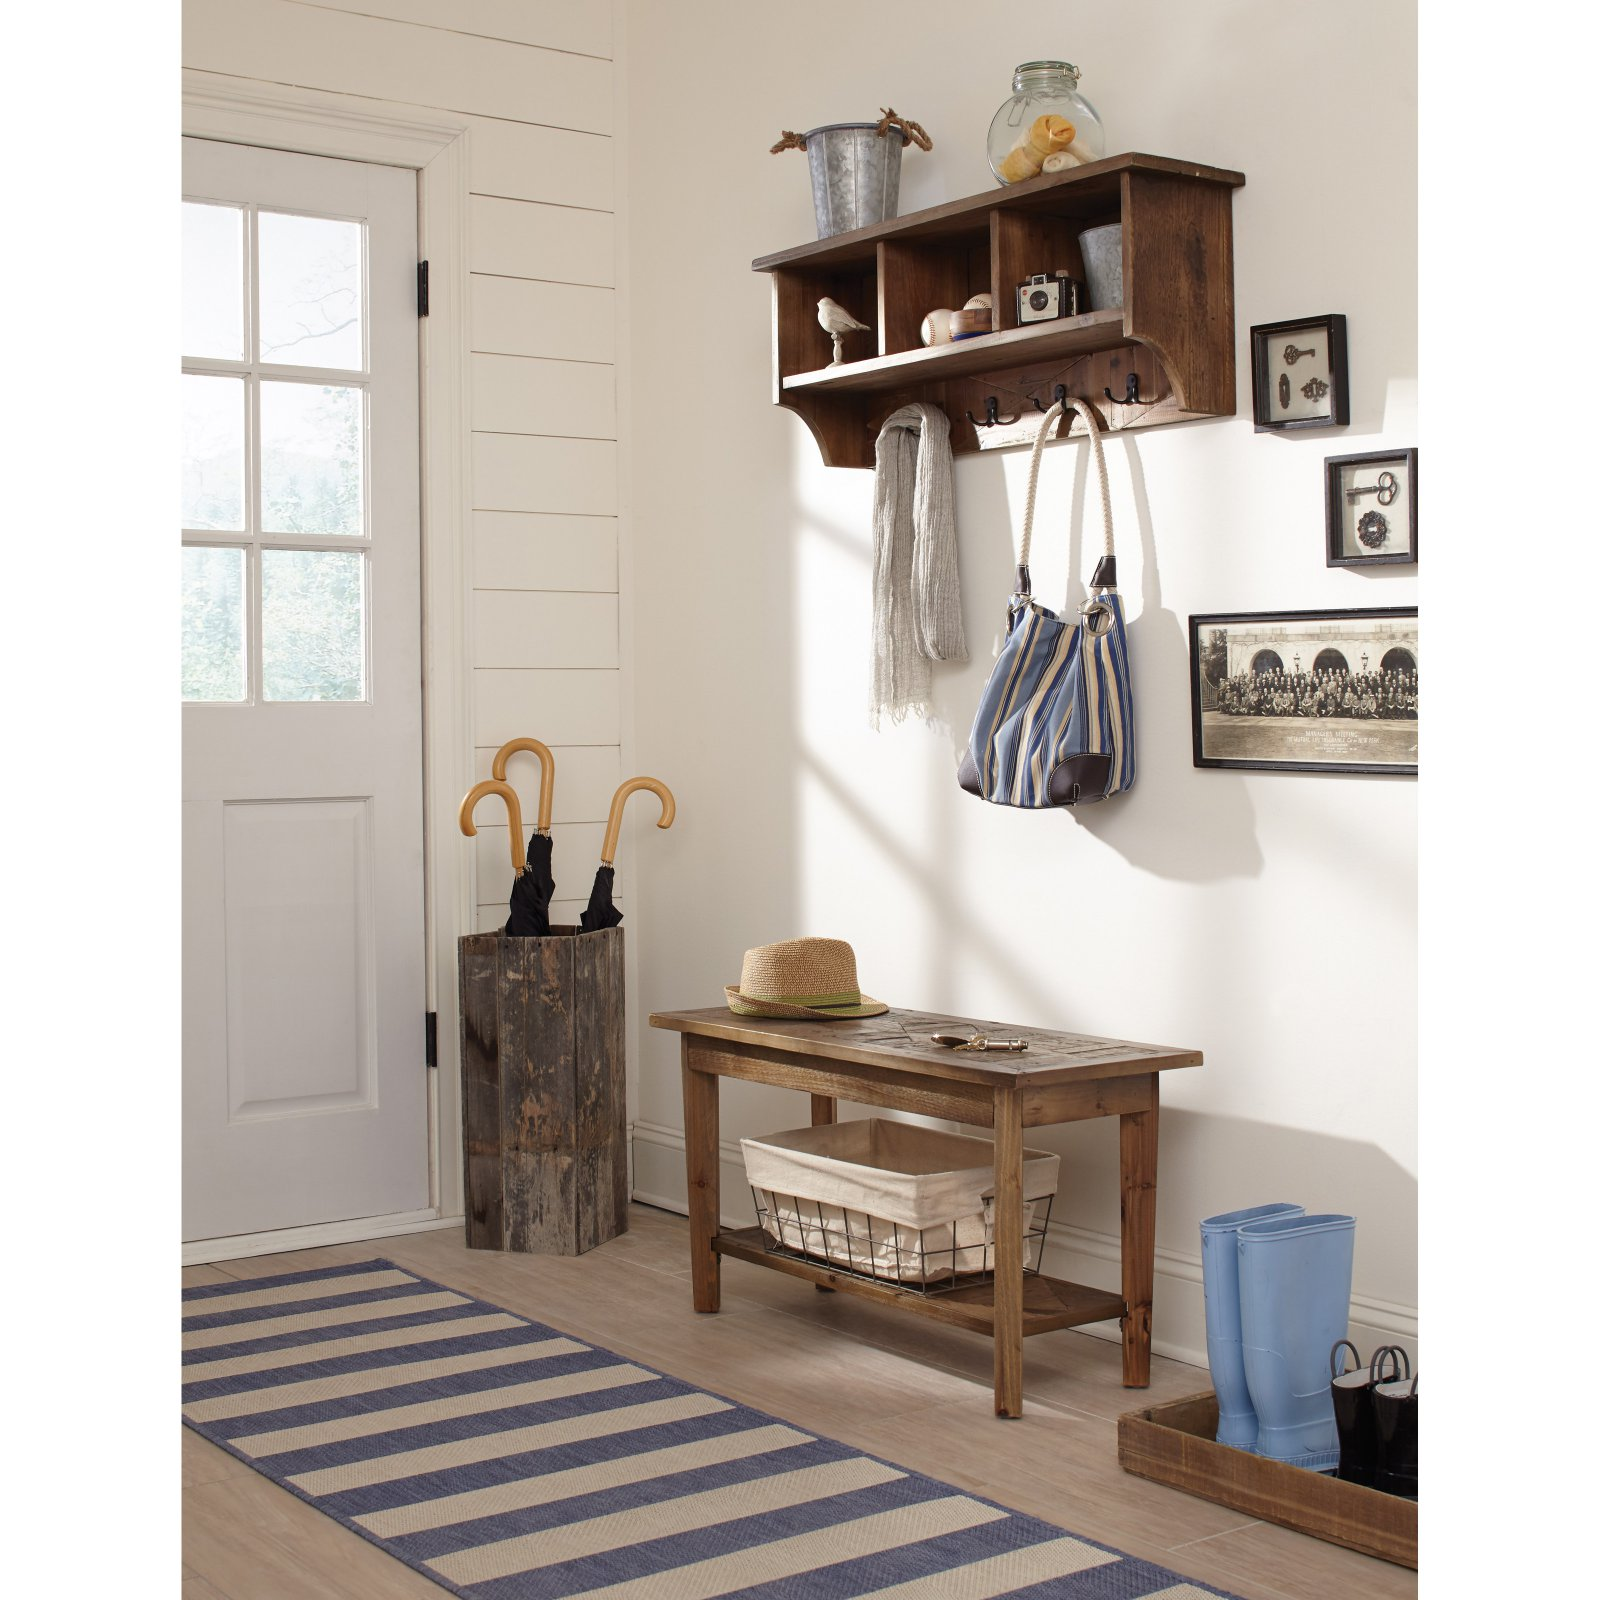 Alaterre Revive Storage Coat Hook with Bench Set